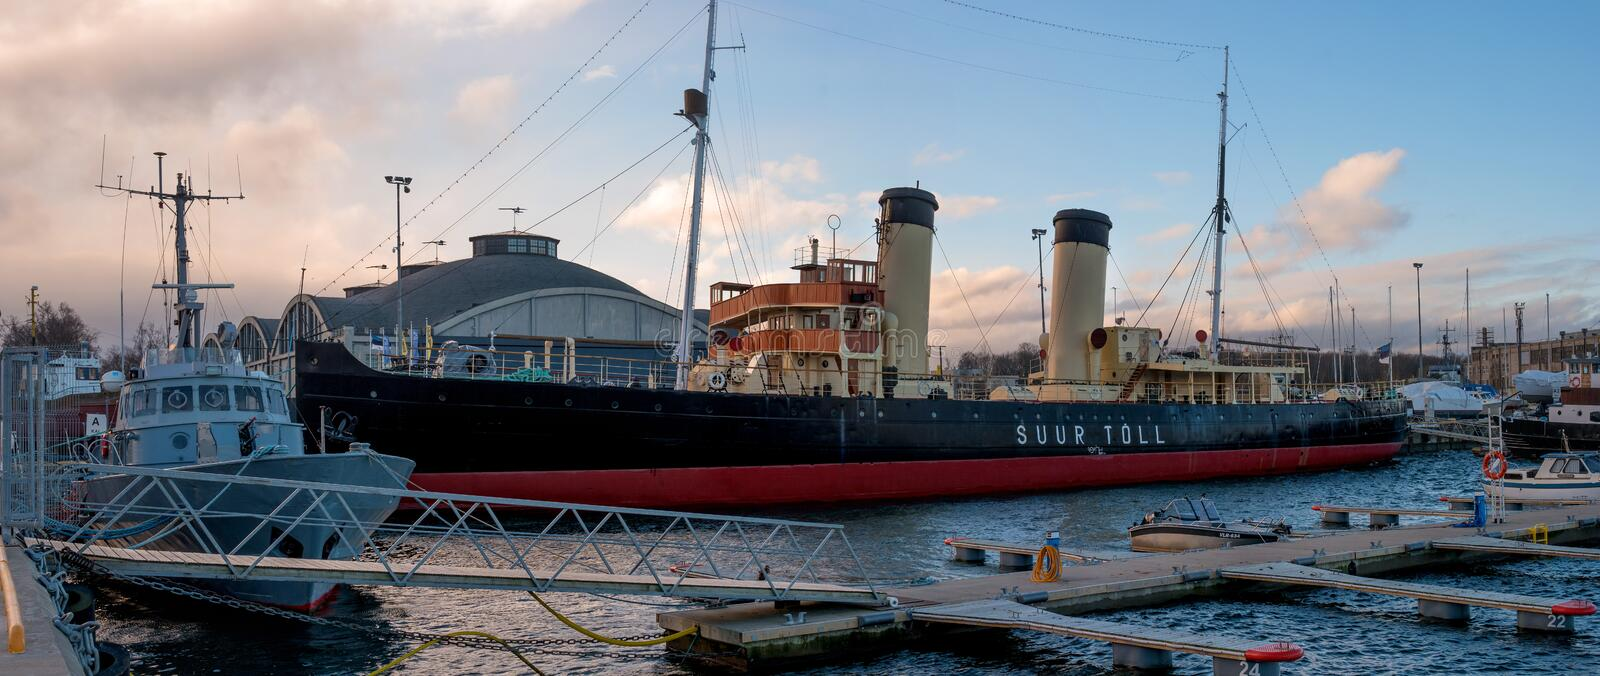 Tallinn, Estonia - November 18, 2018: Suur Toll icebreaker at the pier. The icebreaker steamer is part of the Tallinn. Maritime Museum and is based at the stock photo